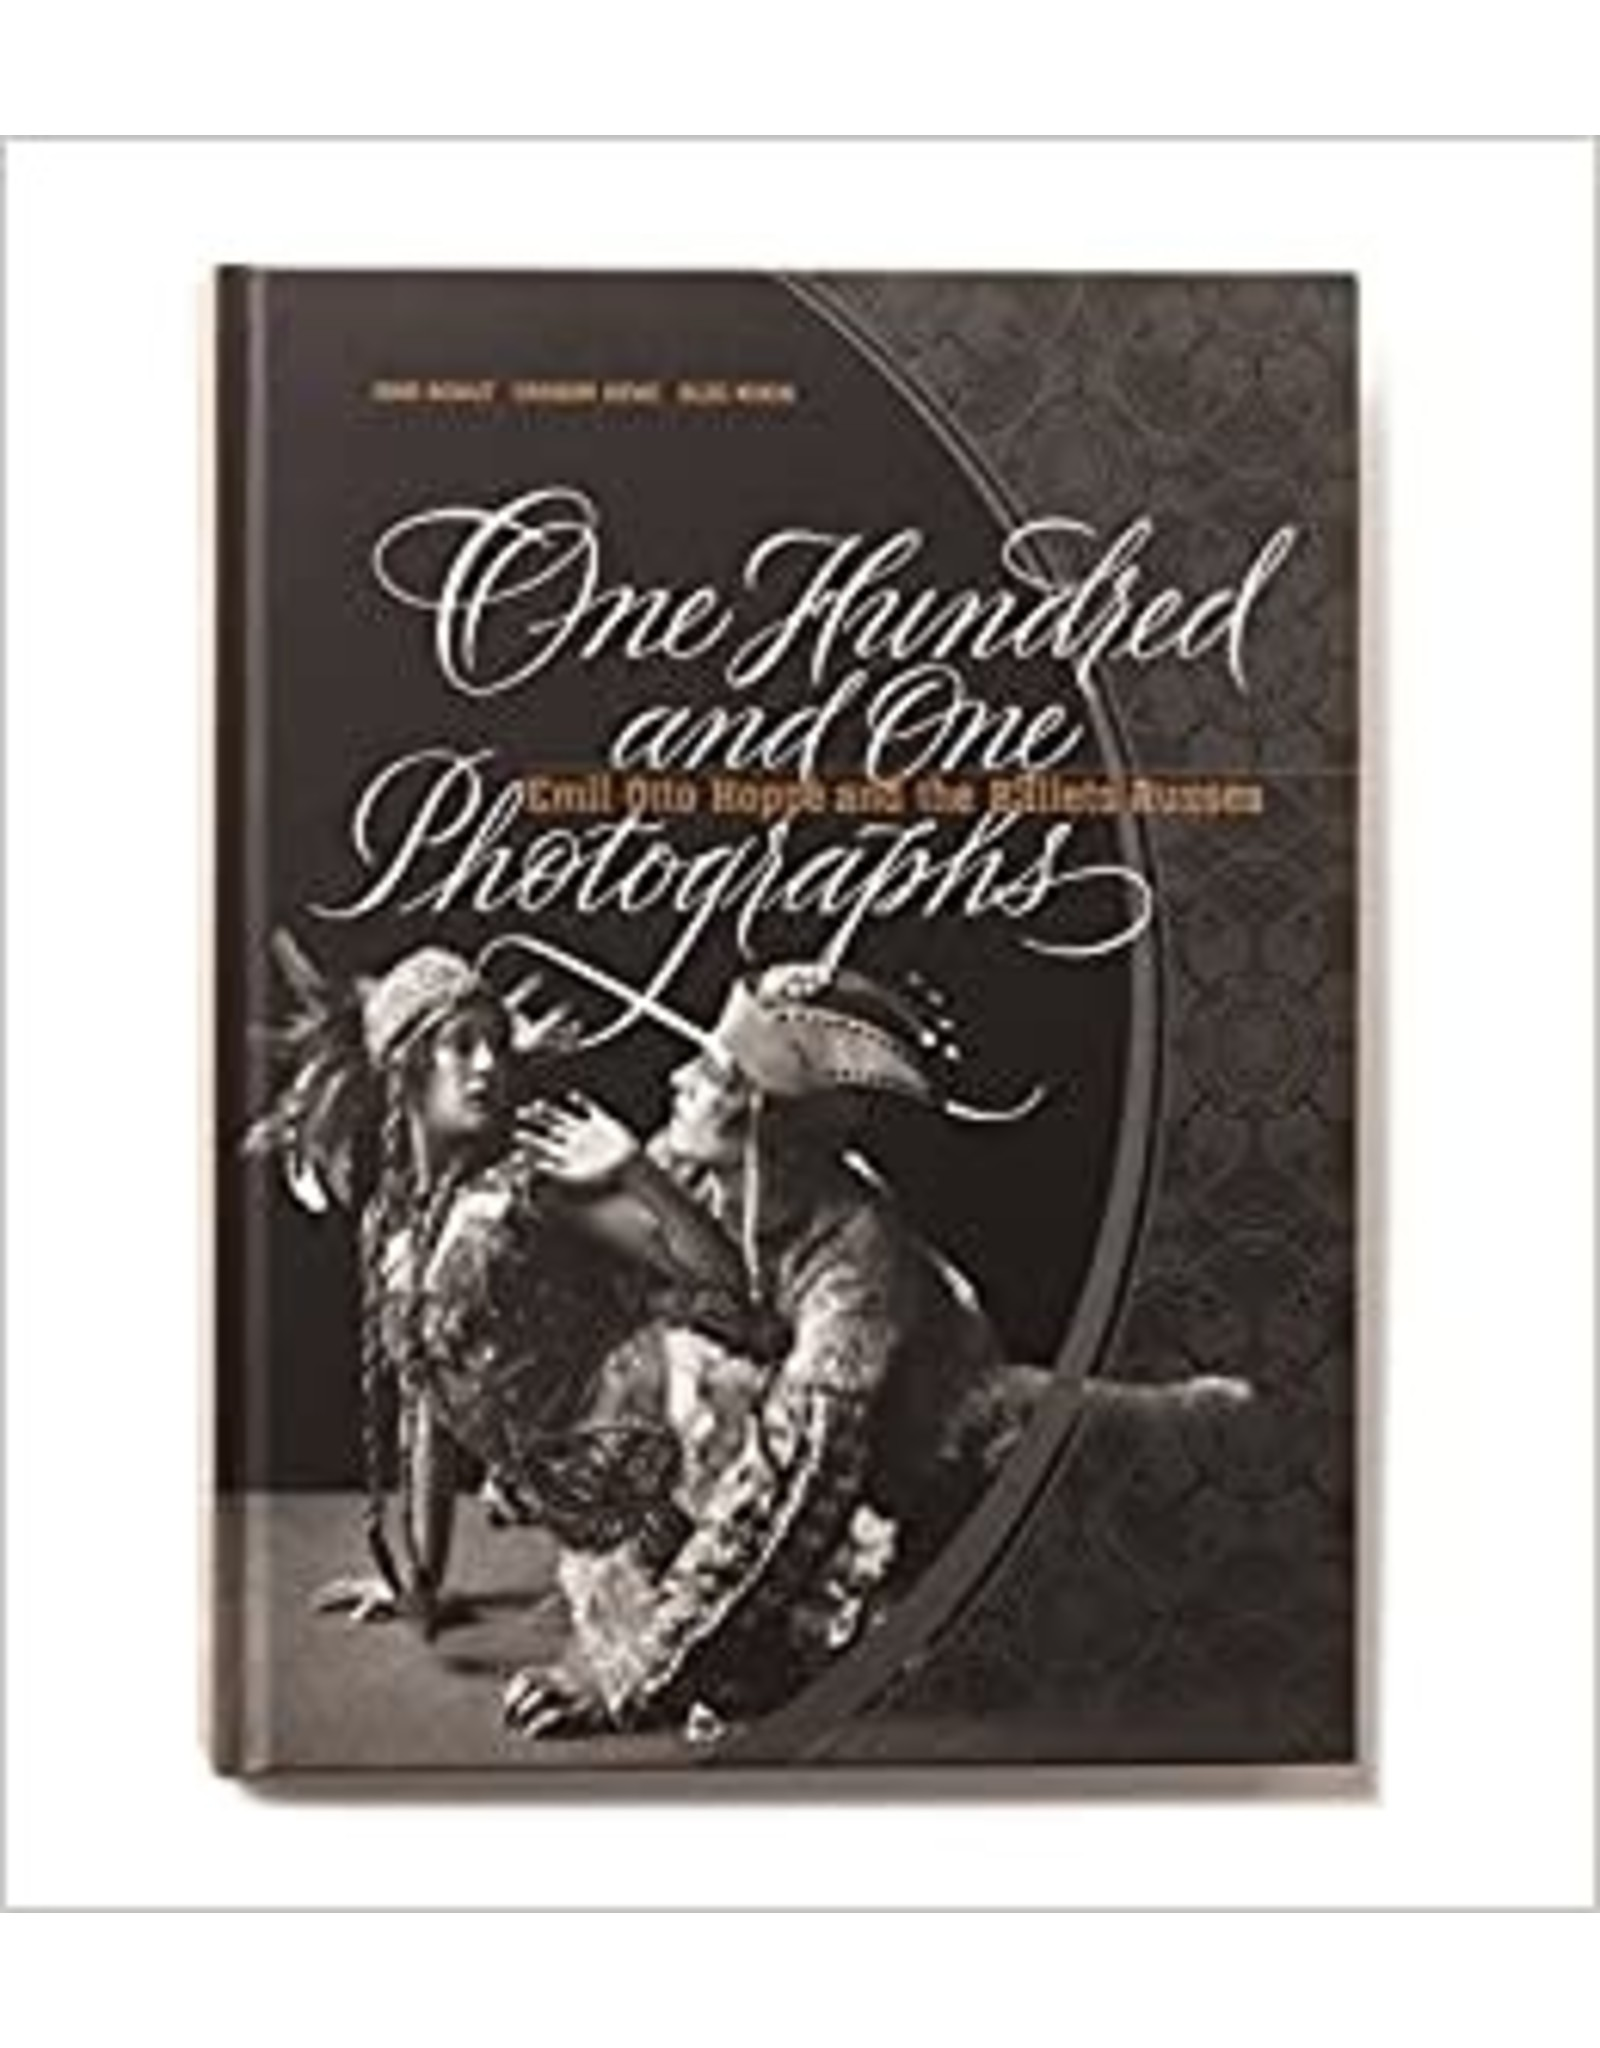 One Hundred and One Photographs: Emil Otto Hoppé and the Ballets Russes